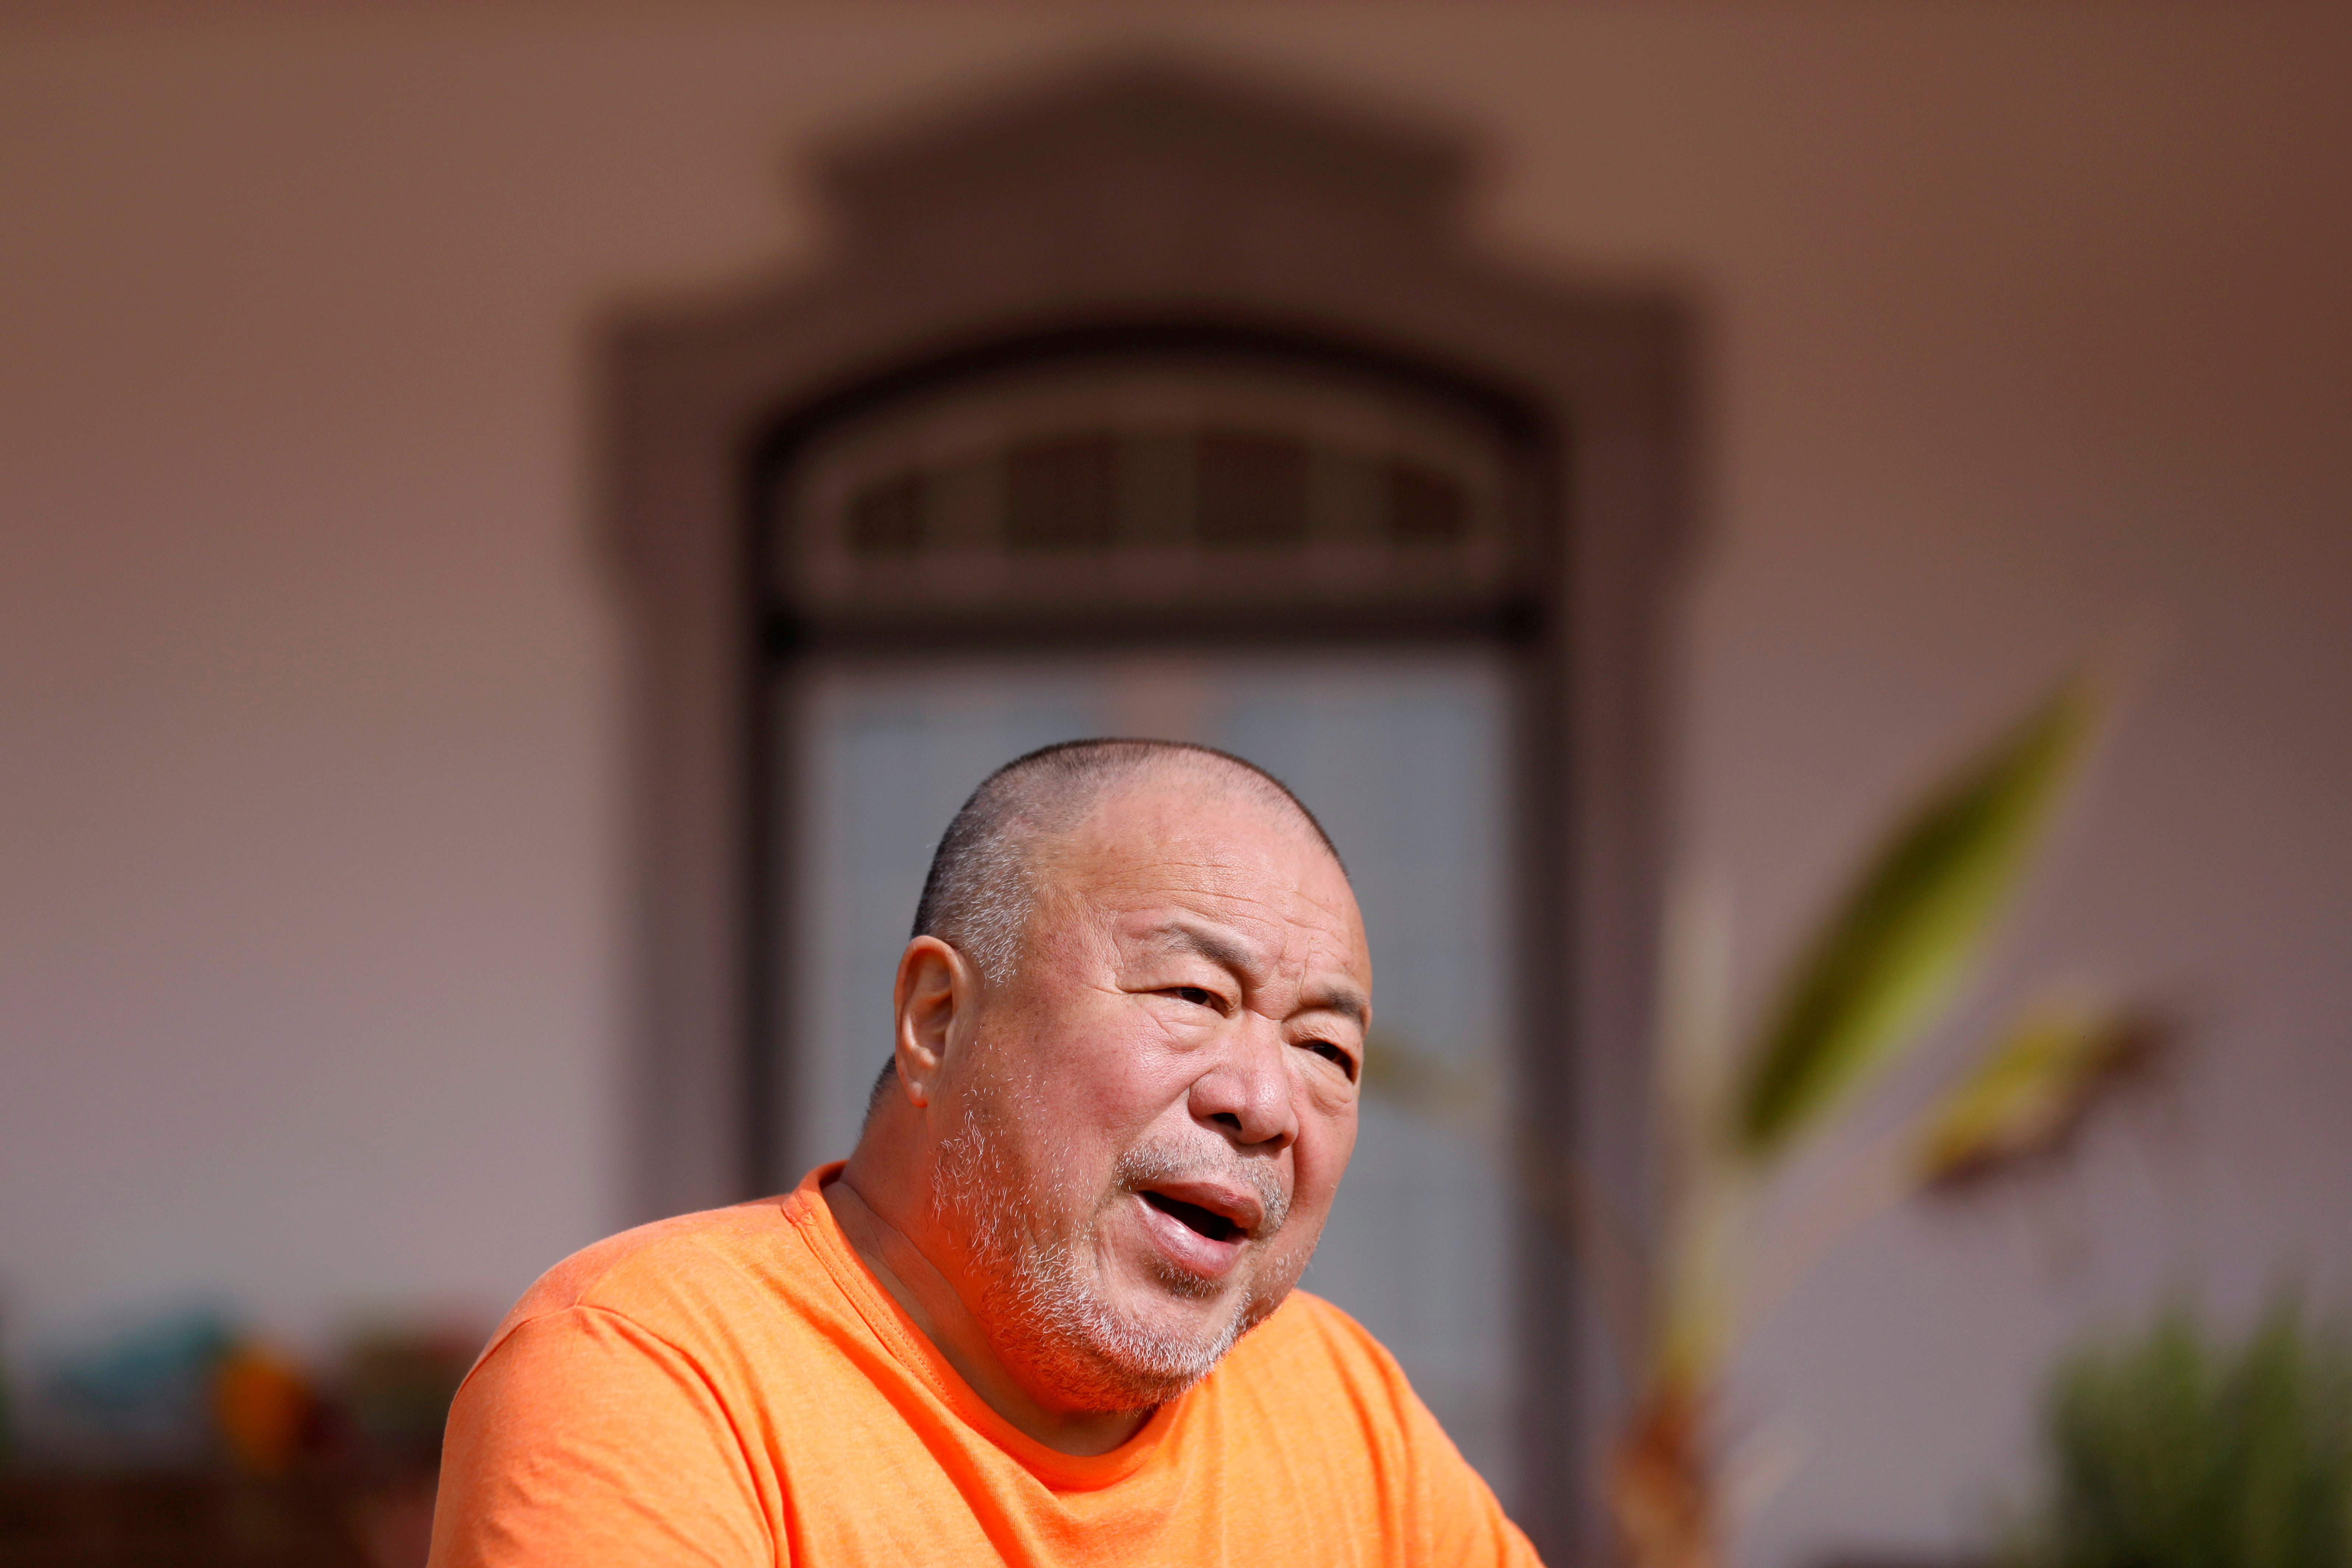 Chinese dissident artist Ai Weiwei speaks during an interview with Reuters in Montemor-O-Novo, Portugal, March 3, 2021. Picture taken March 3, 2021. REUTERS/Pedro Nunes/File Photo